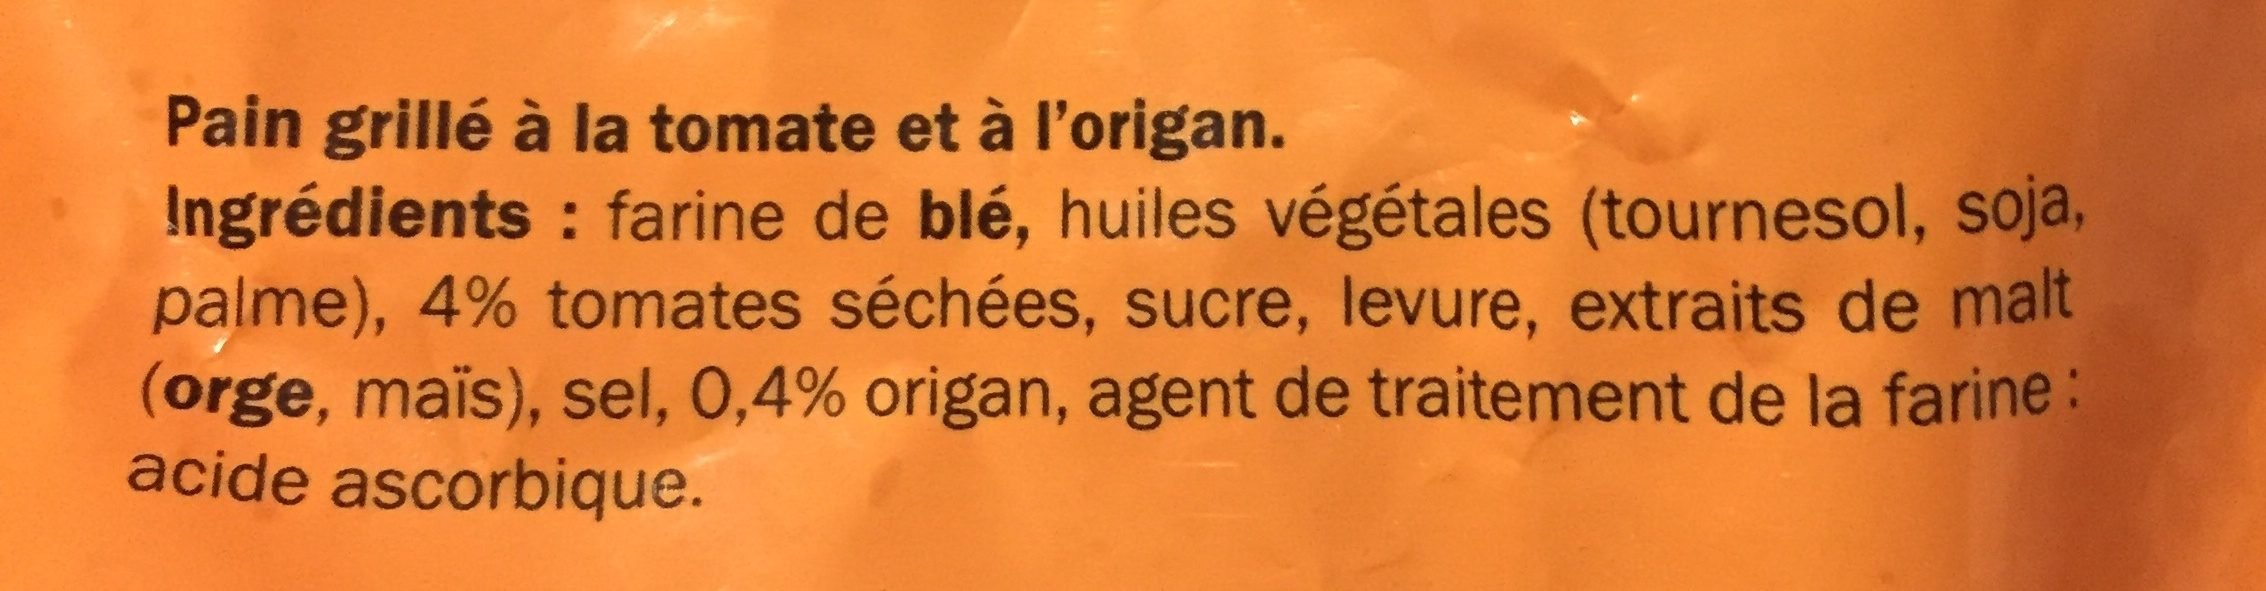 Pain grillé tomate & origan - Ingredients - fr